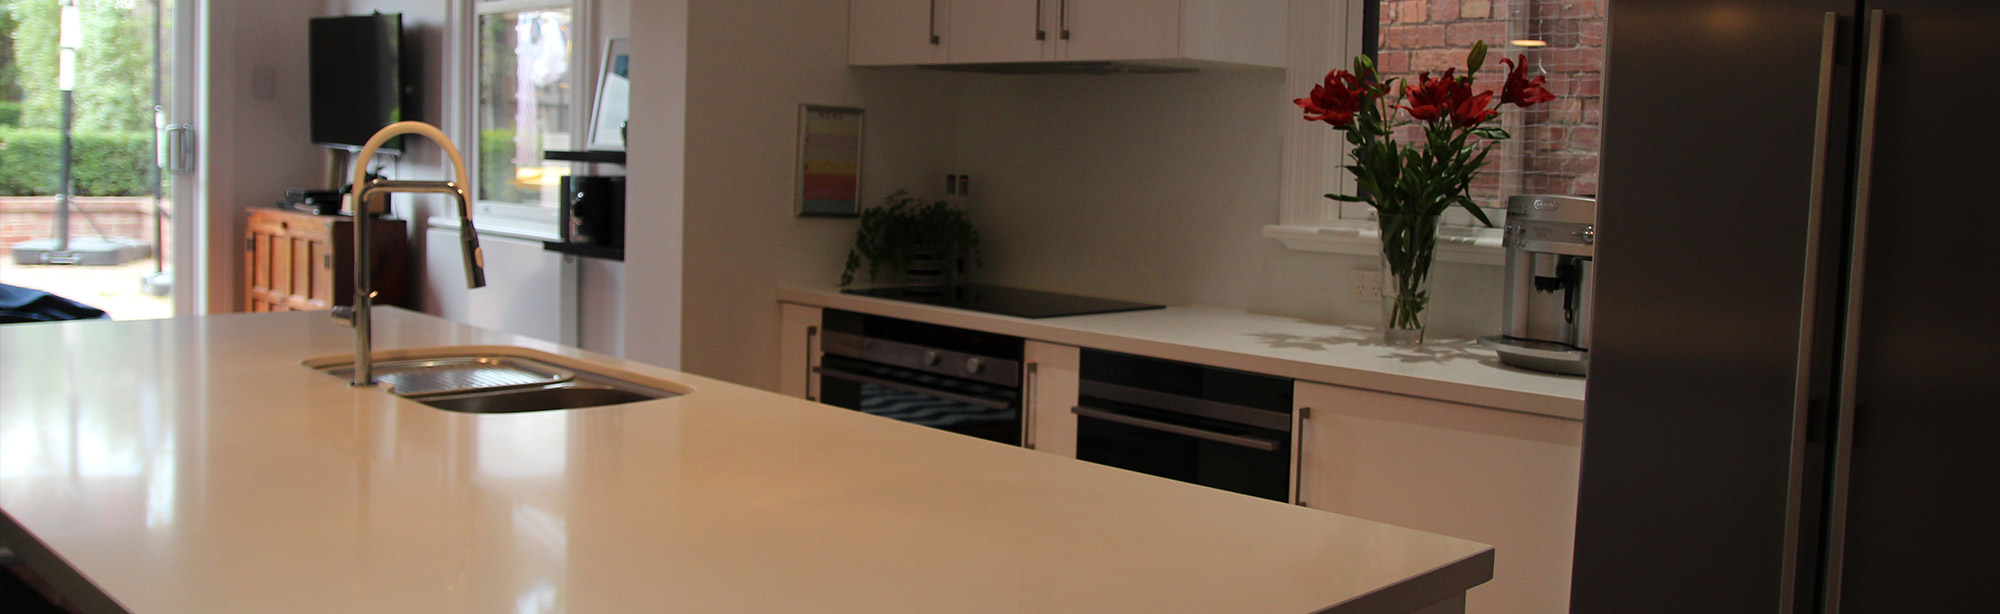 kitchen designers melbourne kitchen designers melbourne kitchens melbourne kitchens 1463